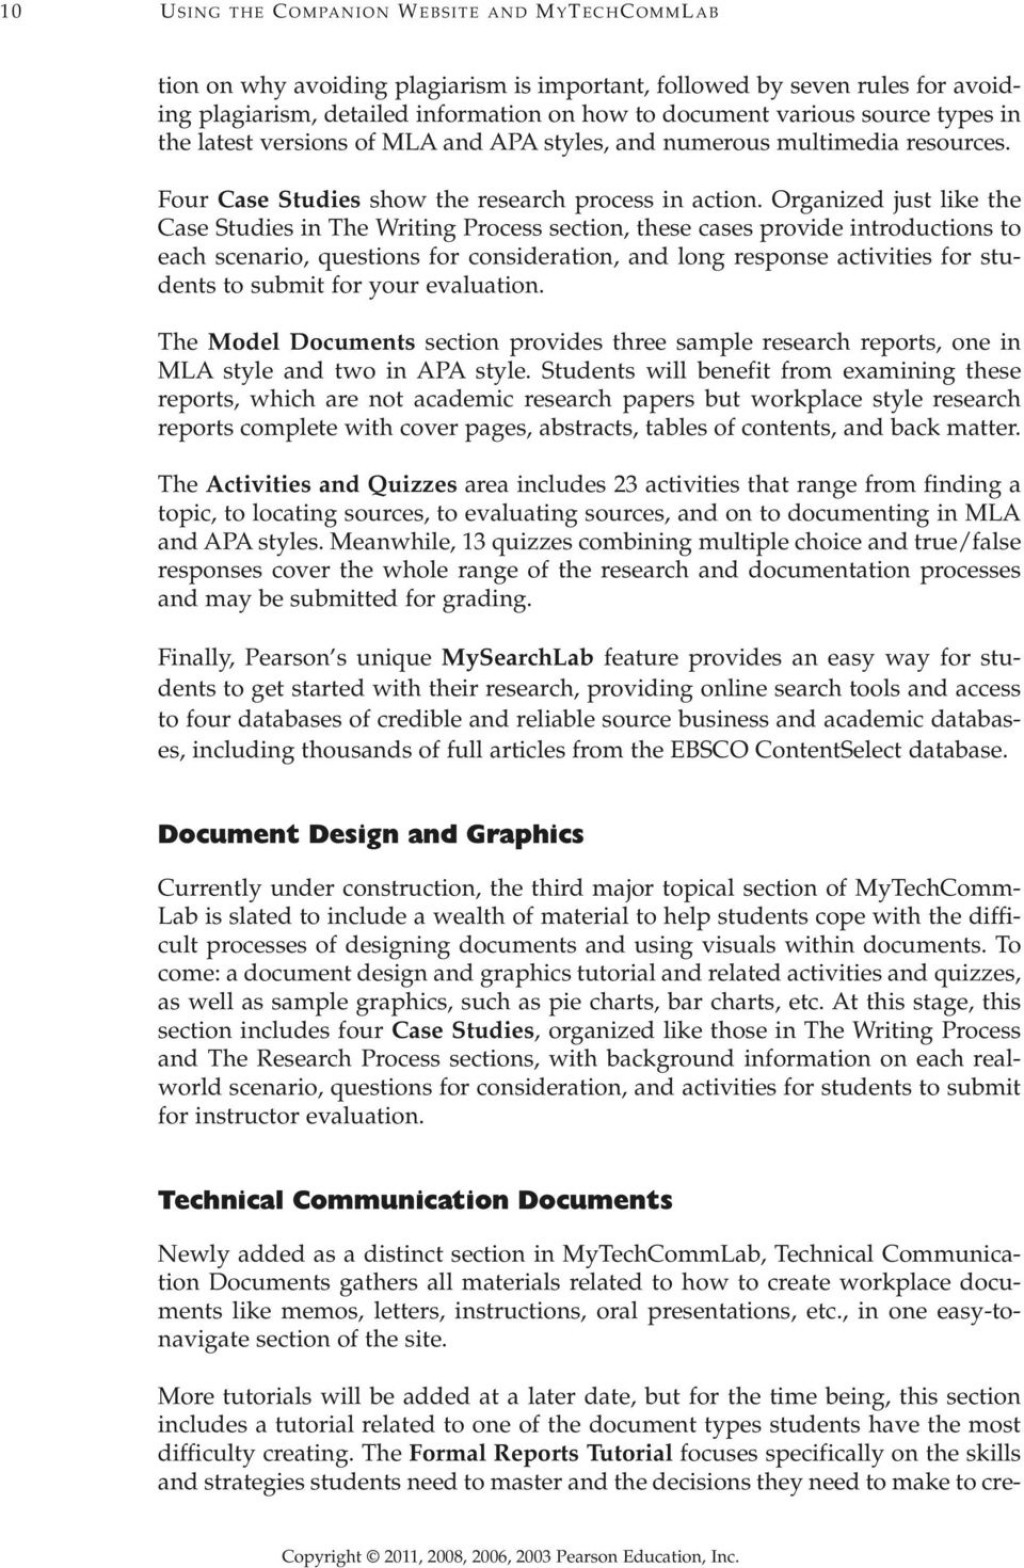 013 Research Paper Page 18 Interesting Topics Fearsome Biology Marine Large